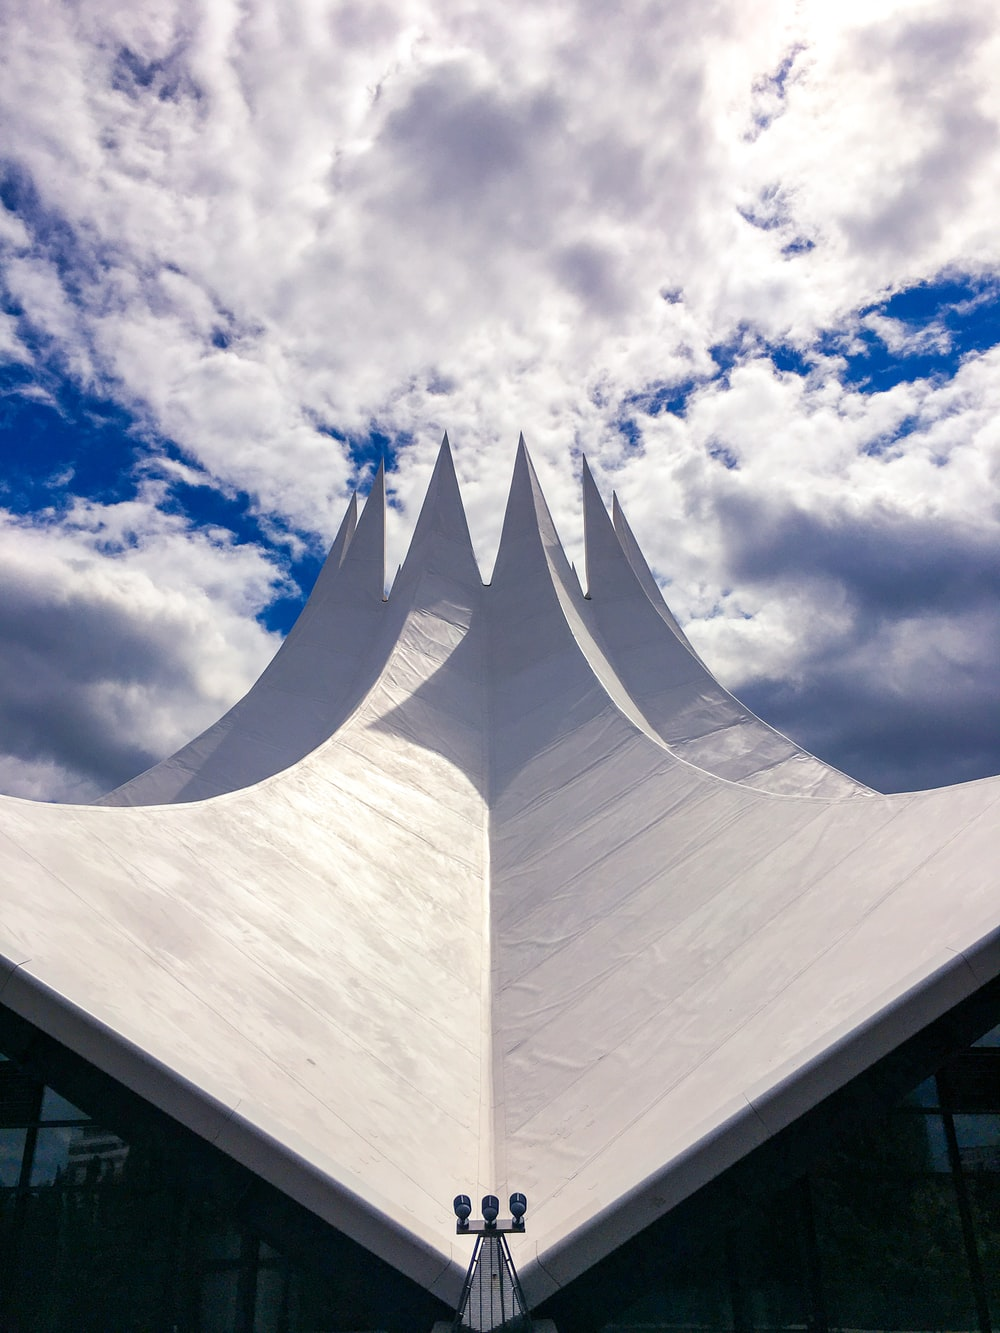 white concrete building under white clouds and blue sky during daytime